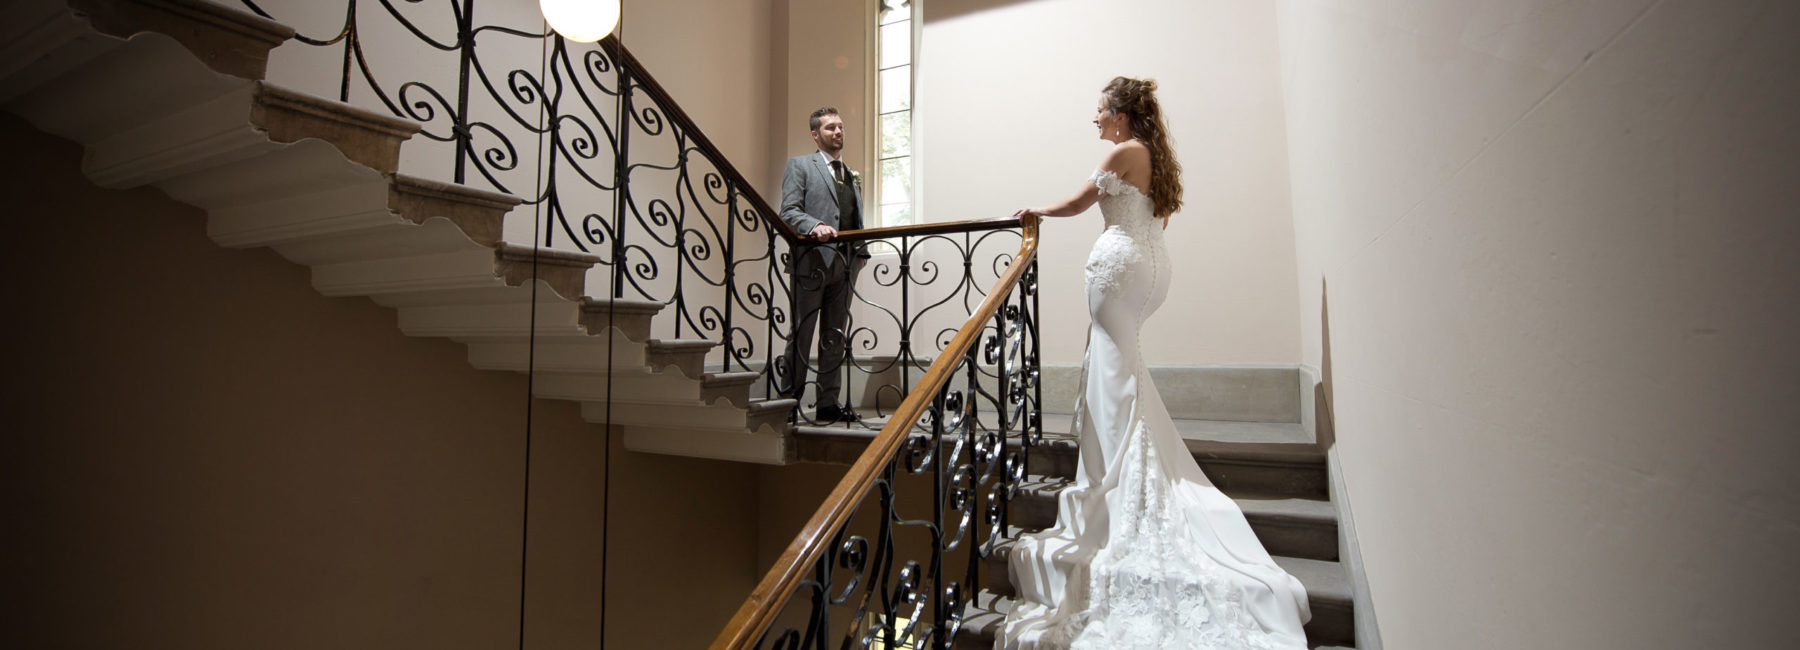 A bride and groom gaze at each other on the landing of a cantilevered staircase